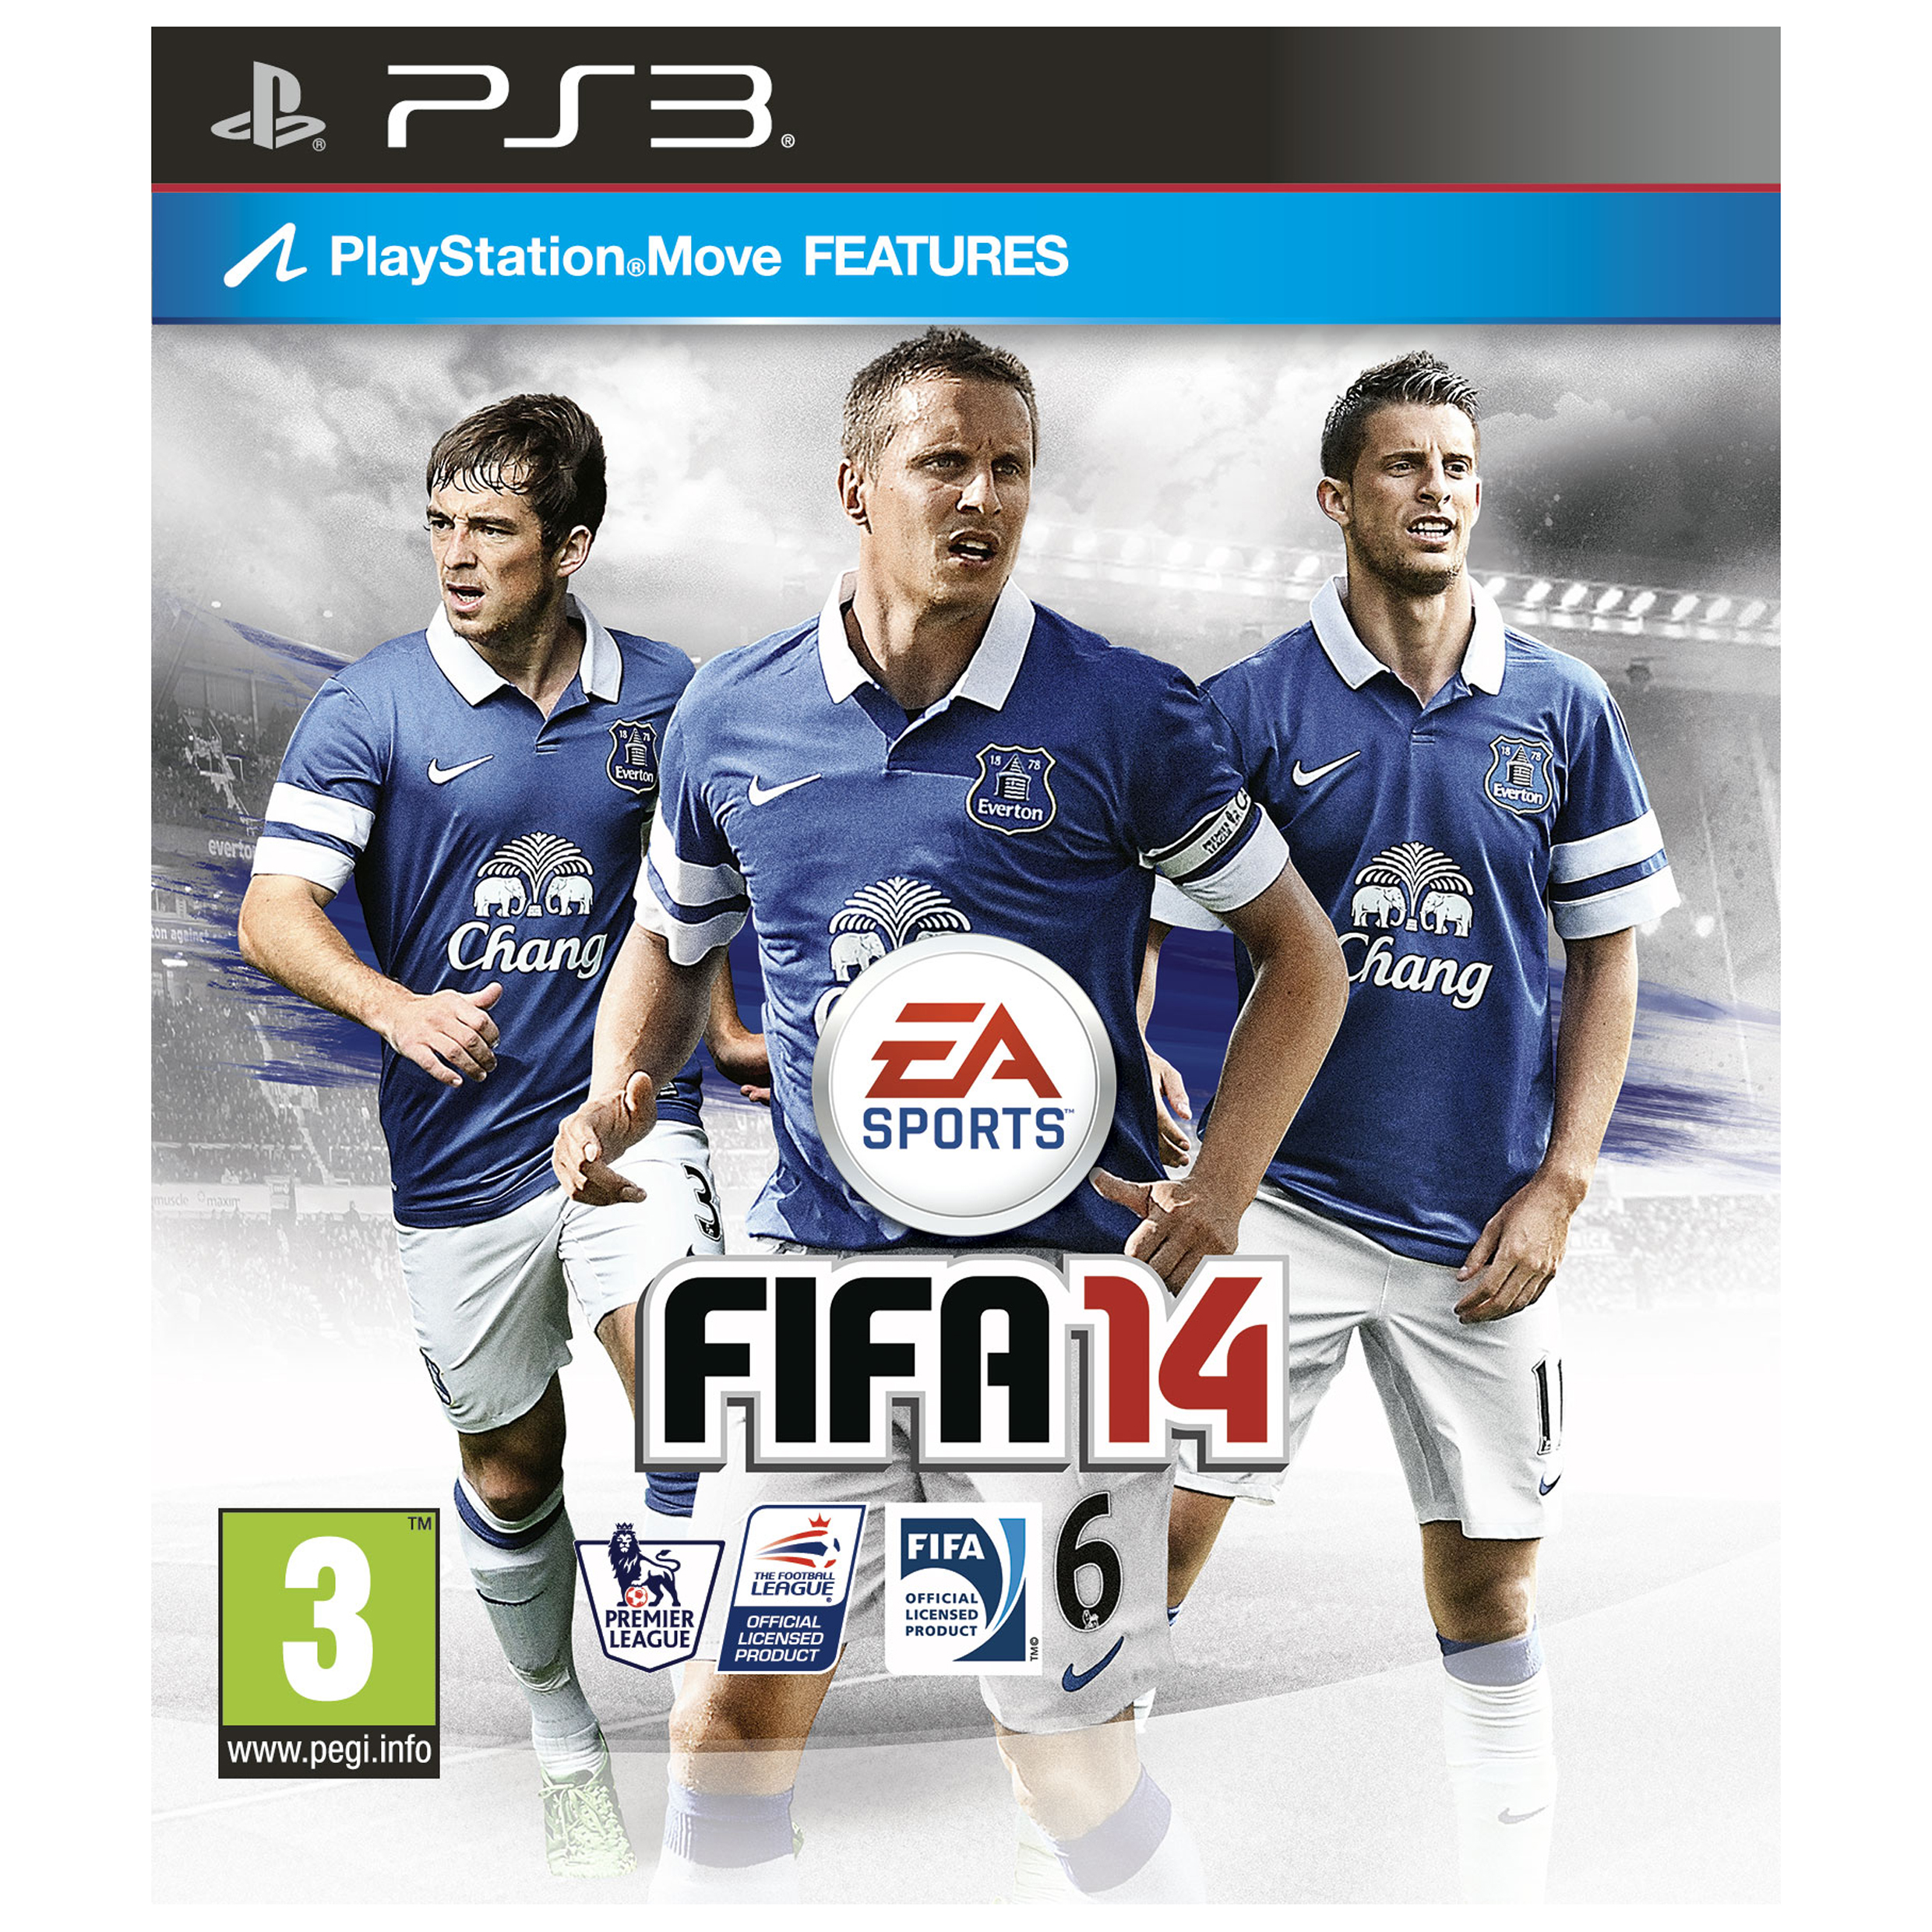 Everton Fifa 14 PS3 Game - EFC Exclusive Cover